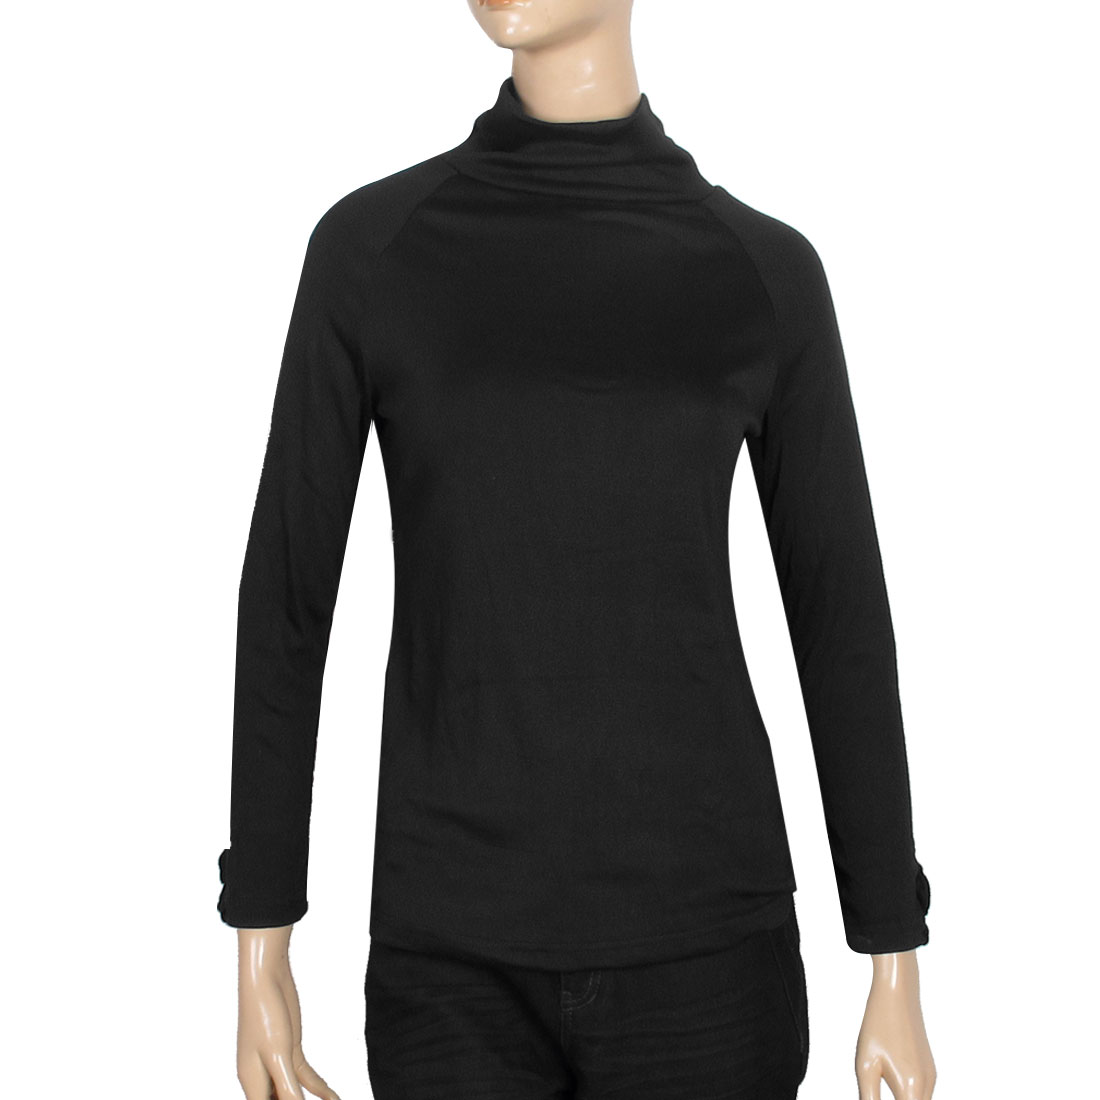 Women Black Turtleneck Raglan Long Sleeve Tops Shirt Clothes XS